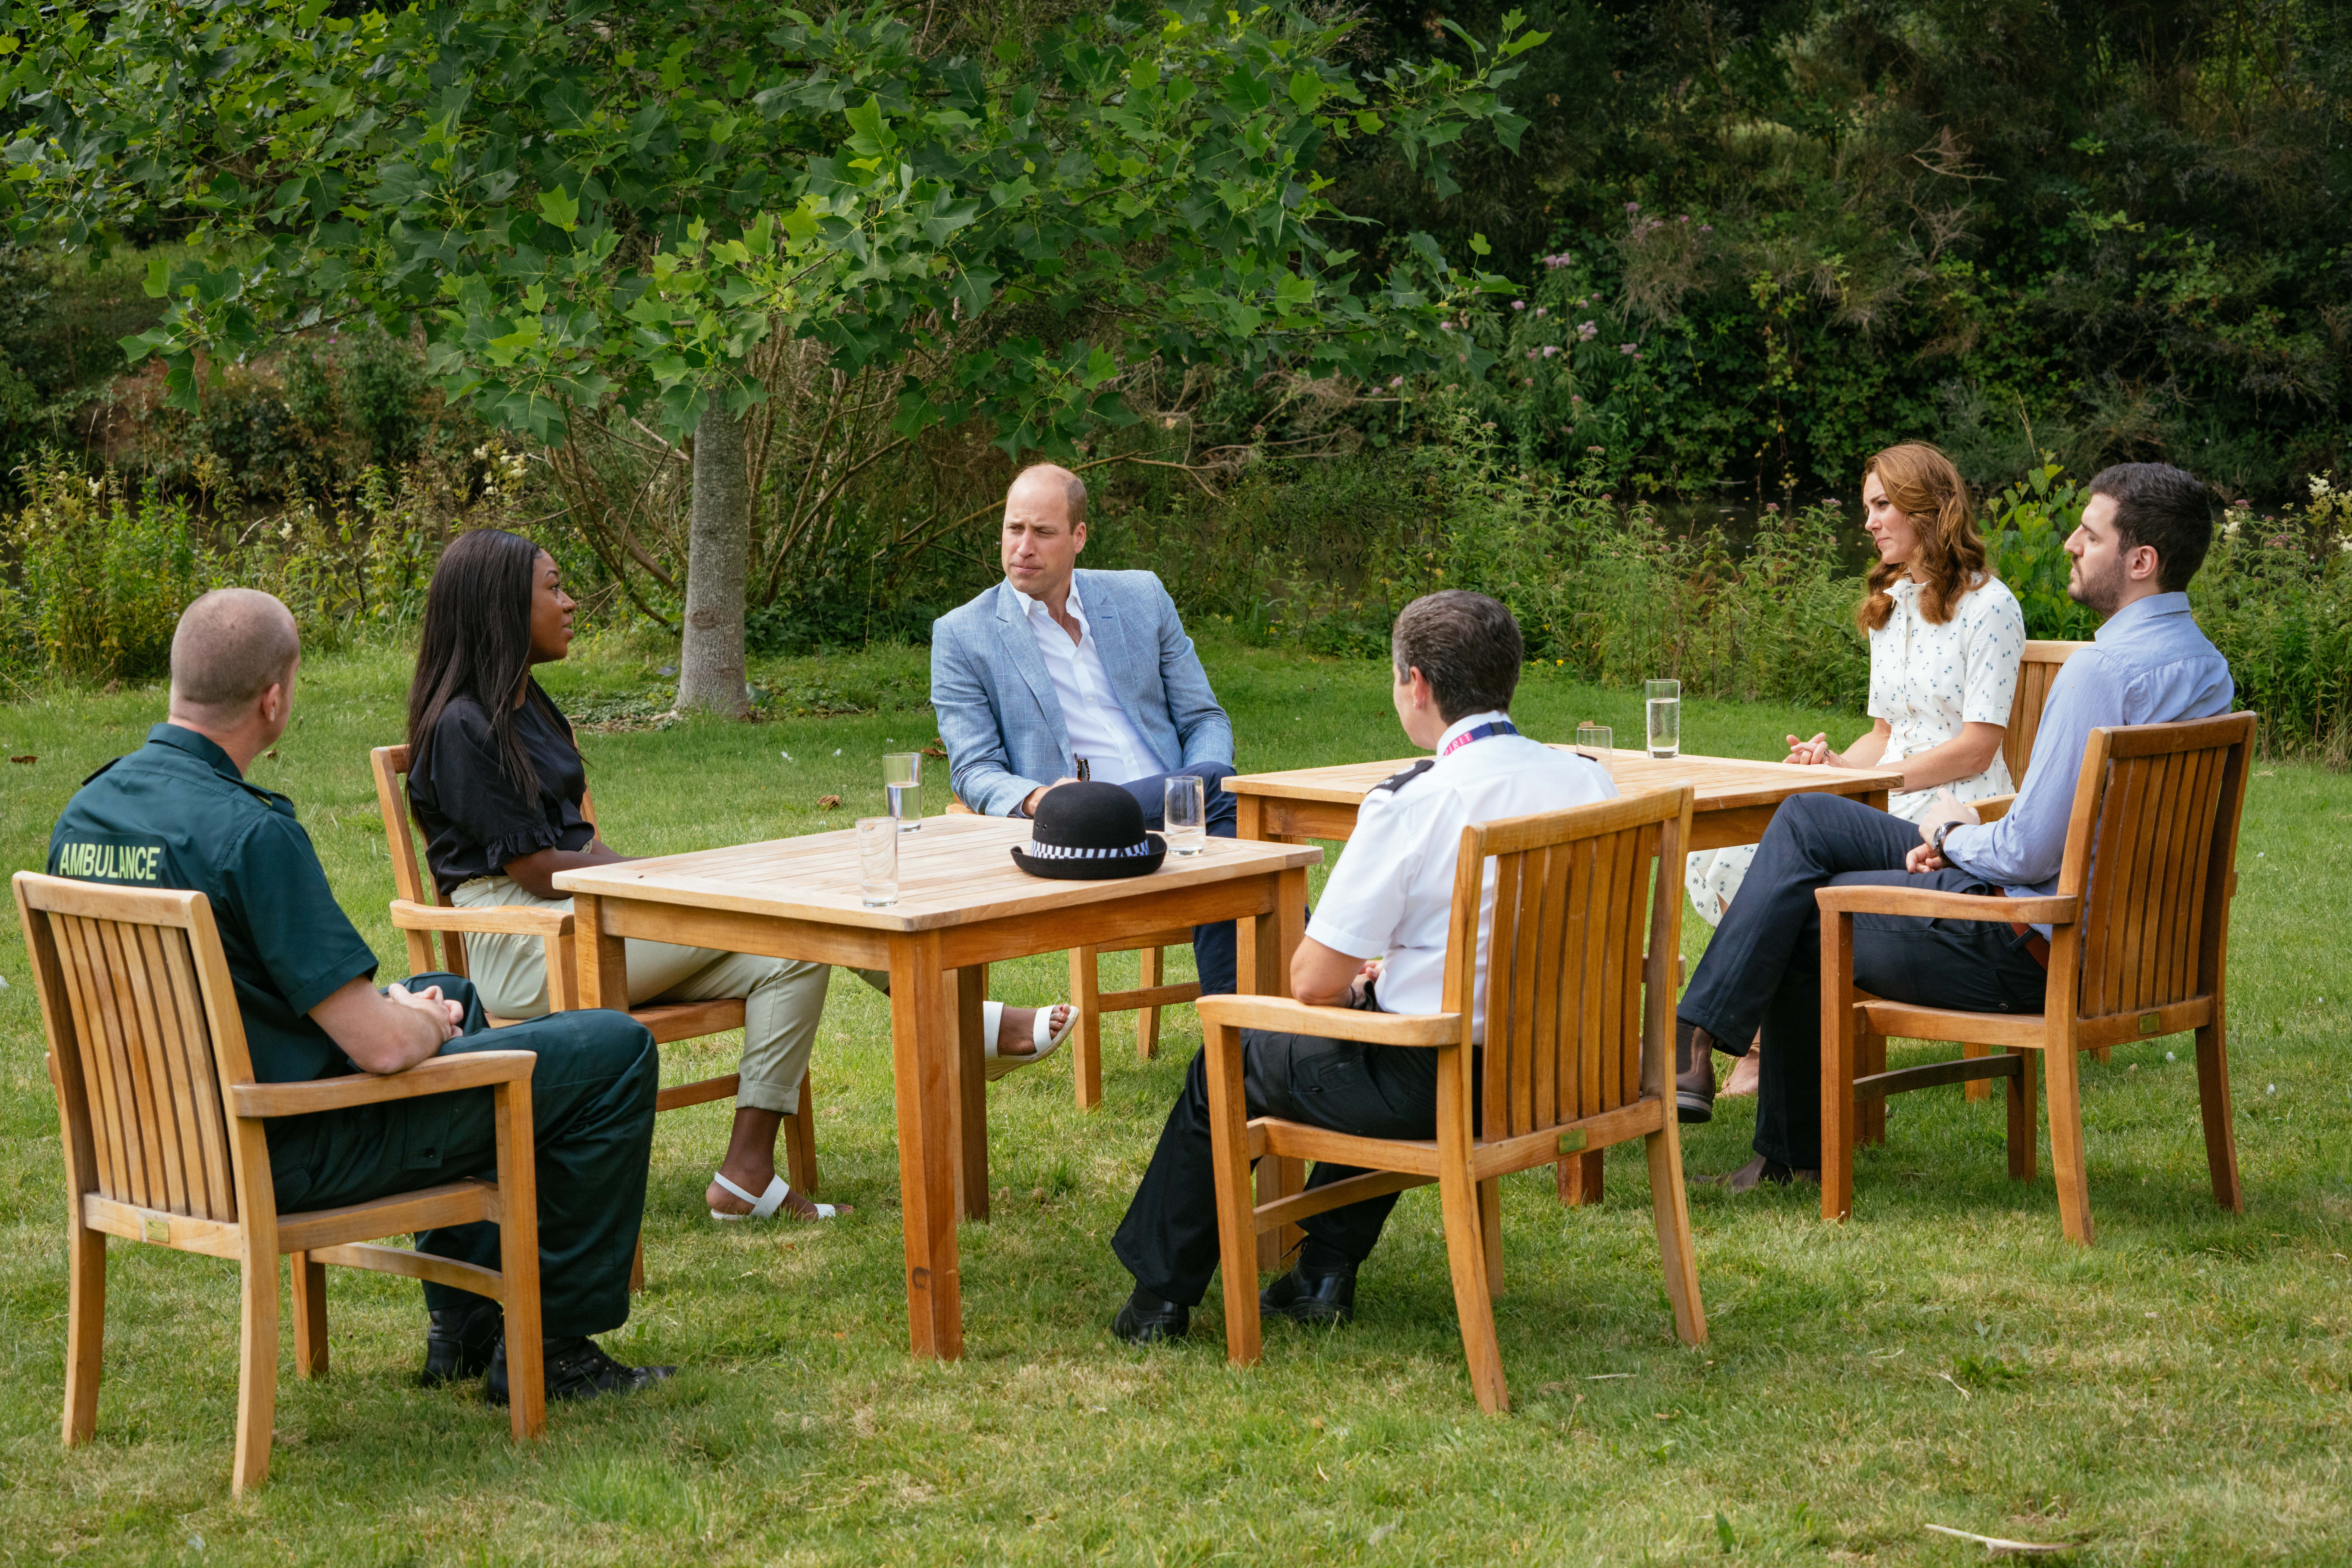 The Duke and Duchess speak to four representatives from organisations which will benefit from The Royal Foundation'sCOVID-19 Response Fund, including two emergency responders and two mental health counsellors